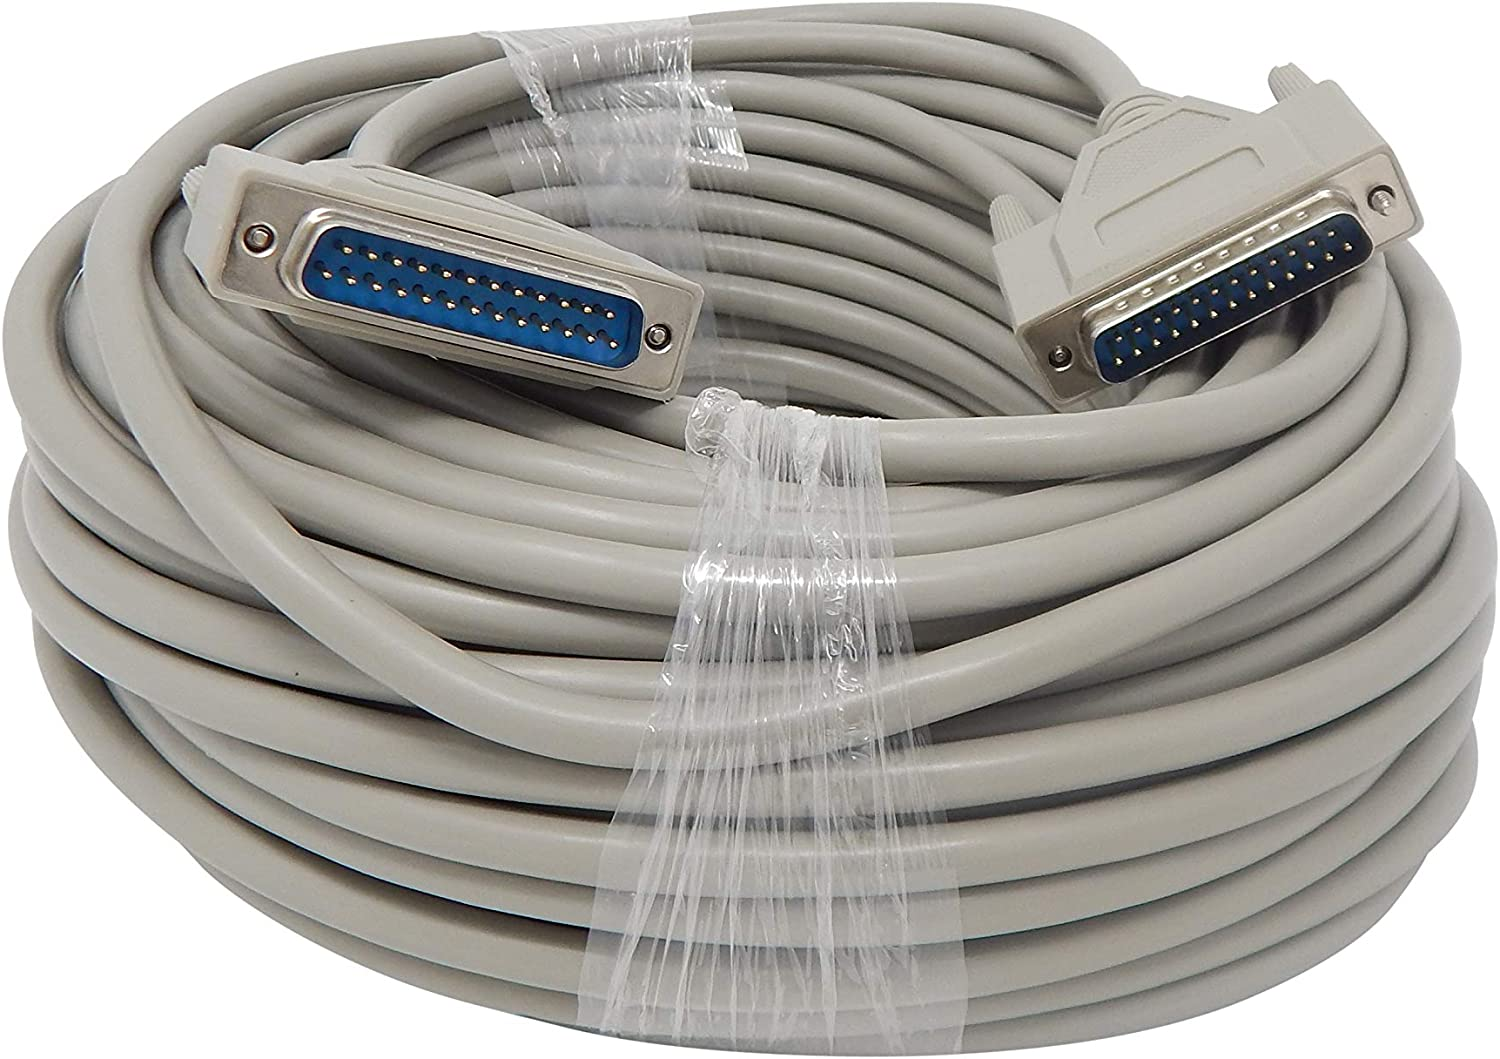 Sf Cable 25ft DB25 Straight Thru Molded Cable Modem or Other DB25 Device to a Switchbox. M//M Serial RS232 Extension Cable Connect Printer